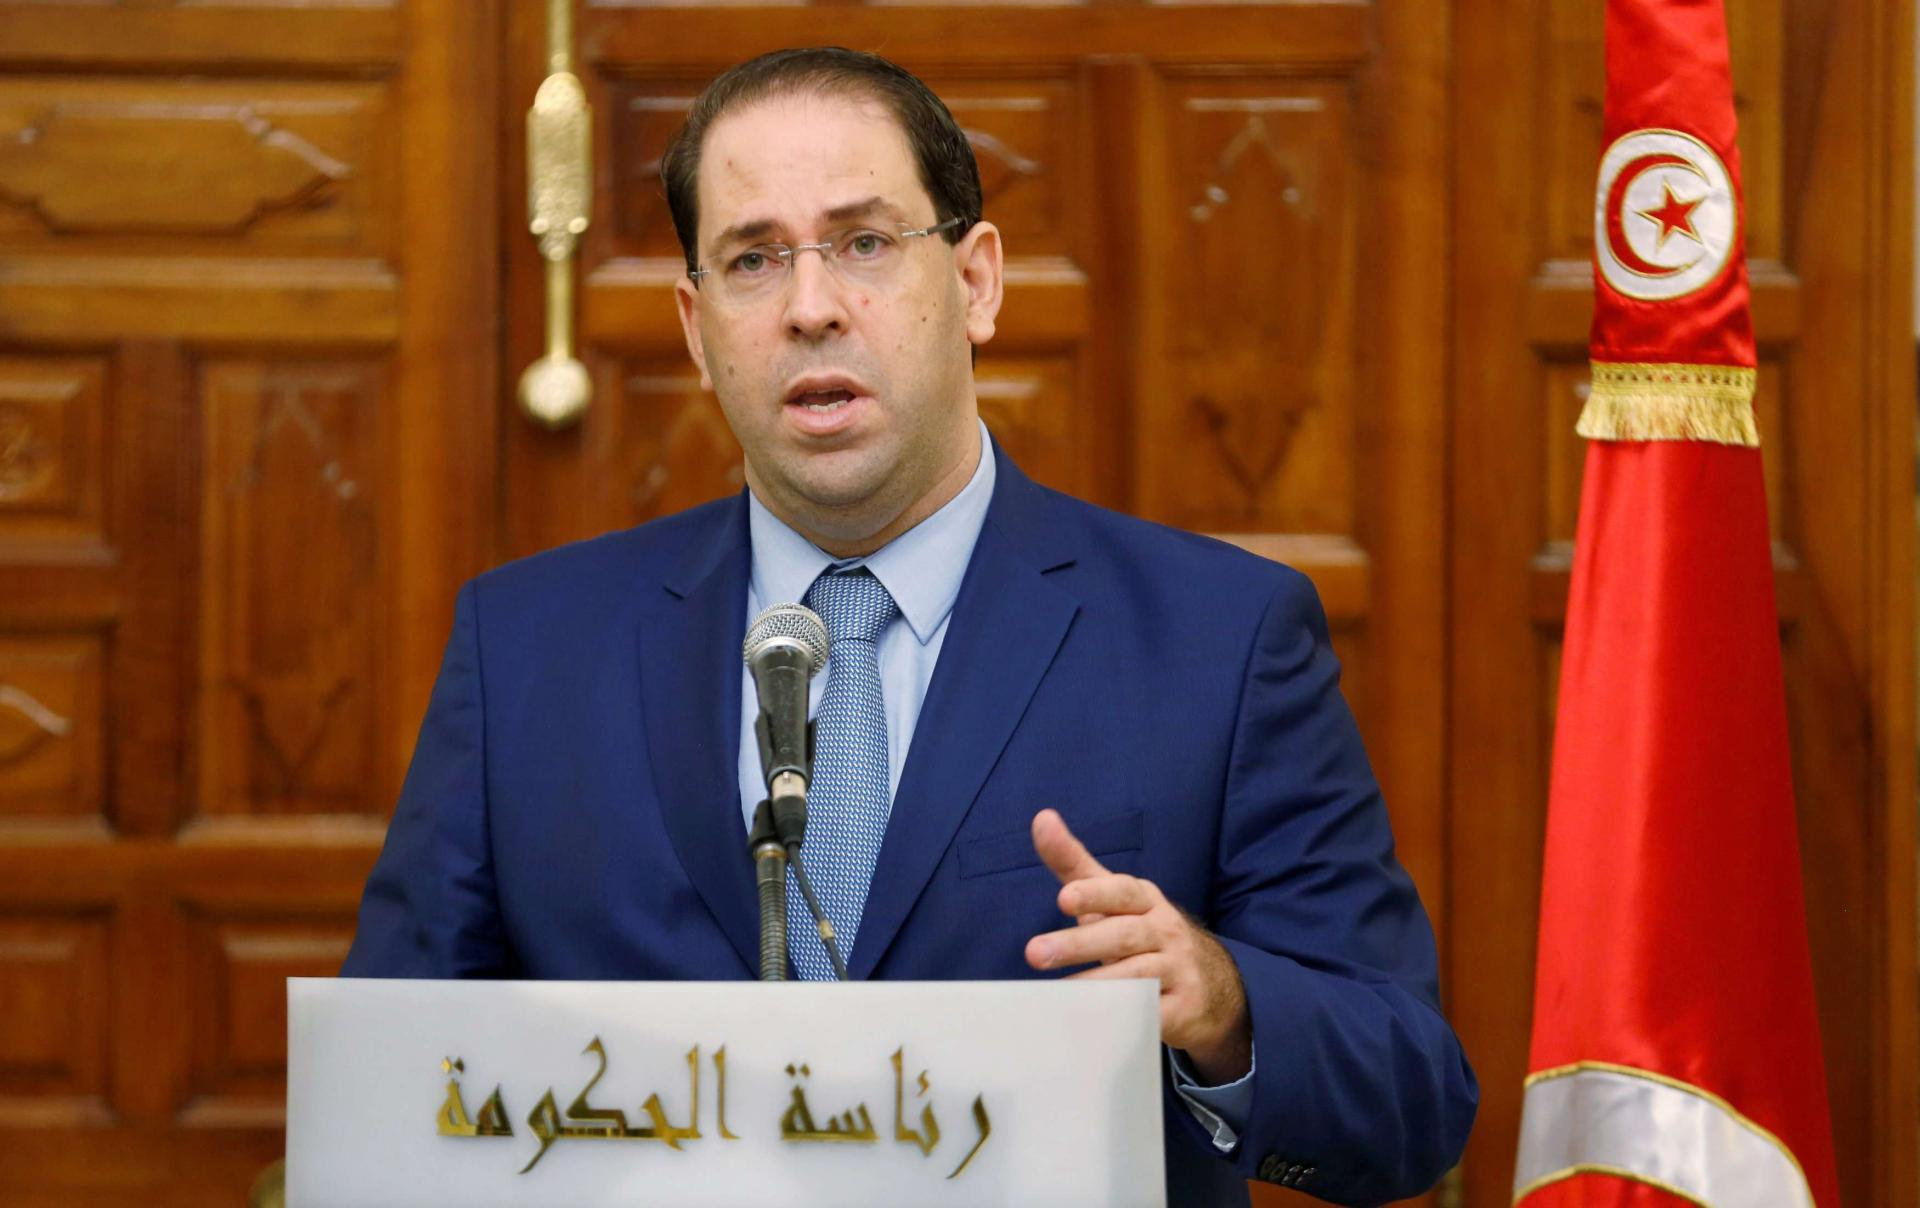 Prime Minister Youssef Chahed conceded that pay was an issue but added that any agreement must take into account the public finances.